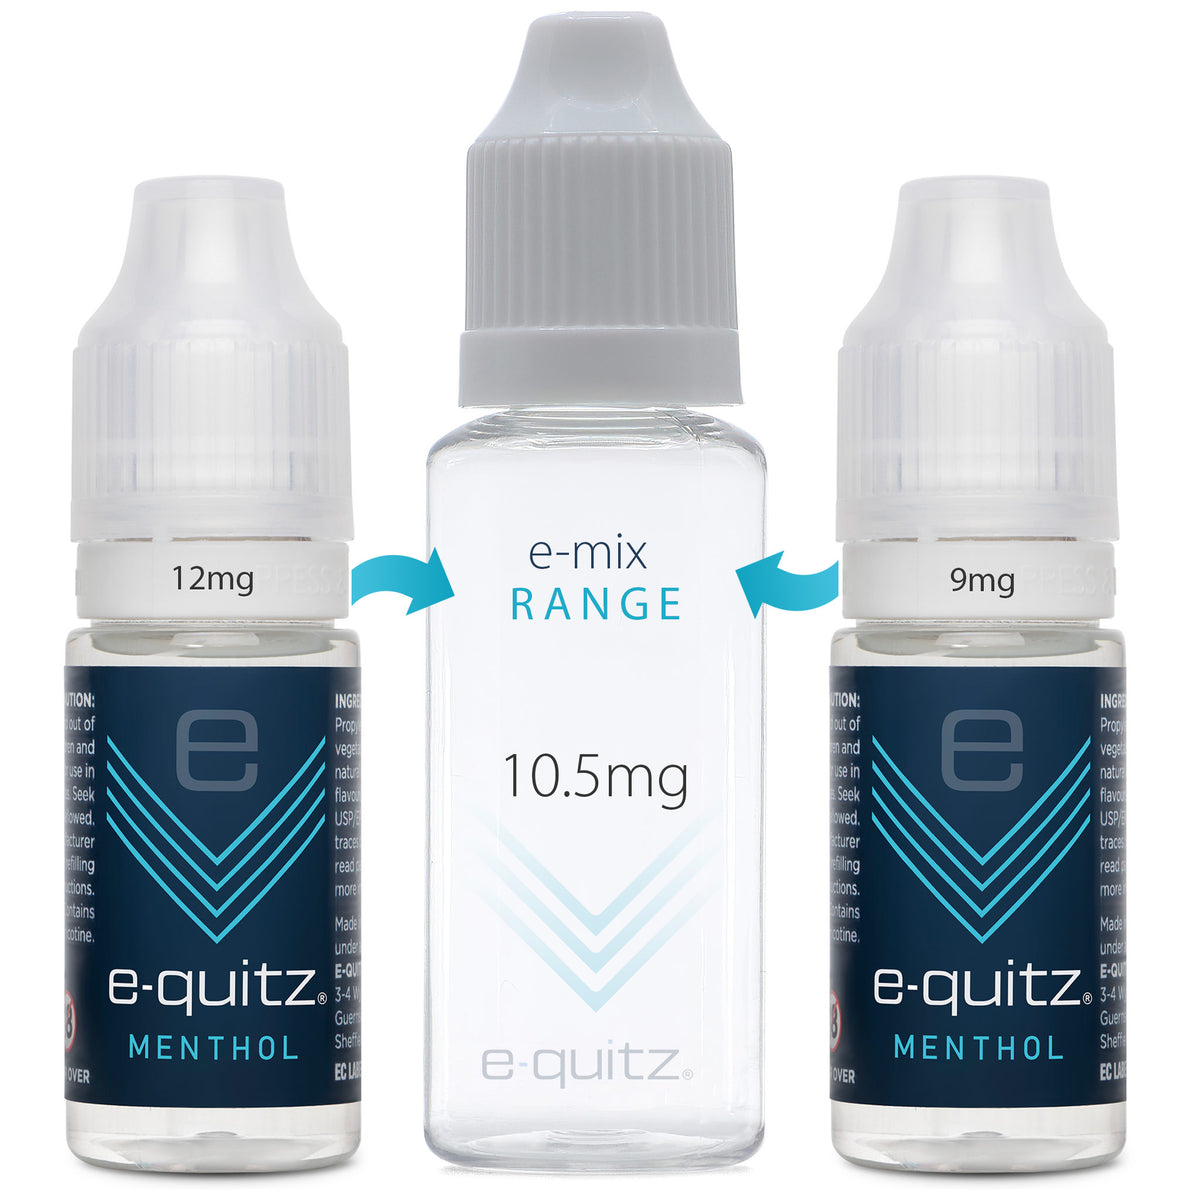 e-quitz 10.5mg menthol e-mix